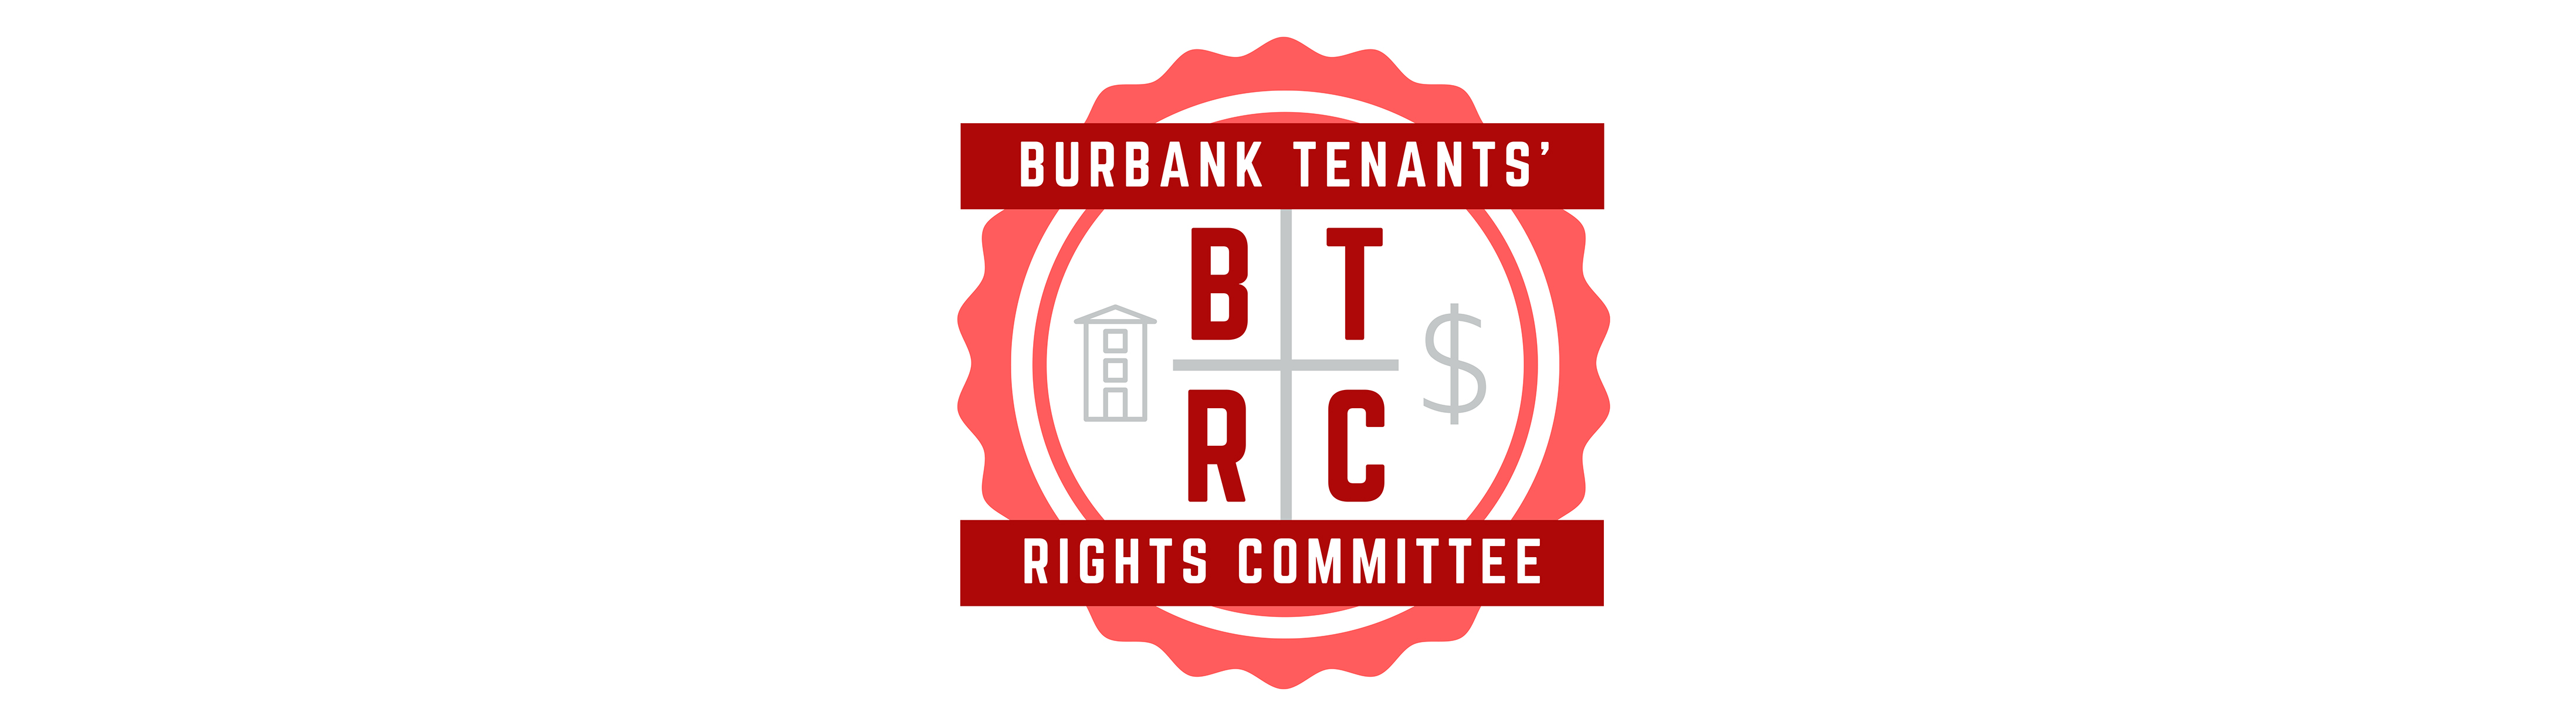 Burbank Tenants Rights Committee (CA)